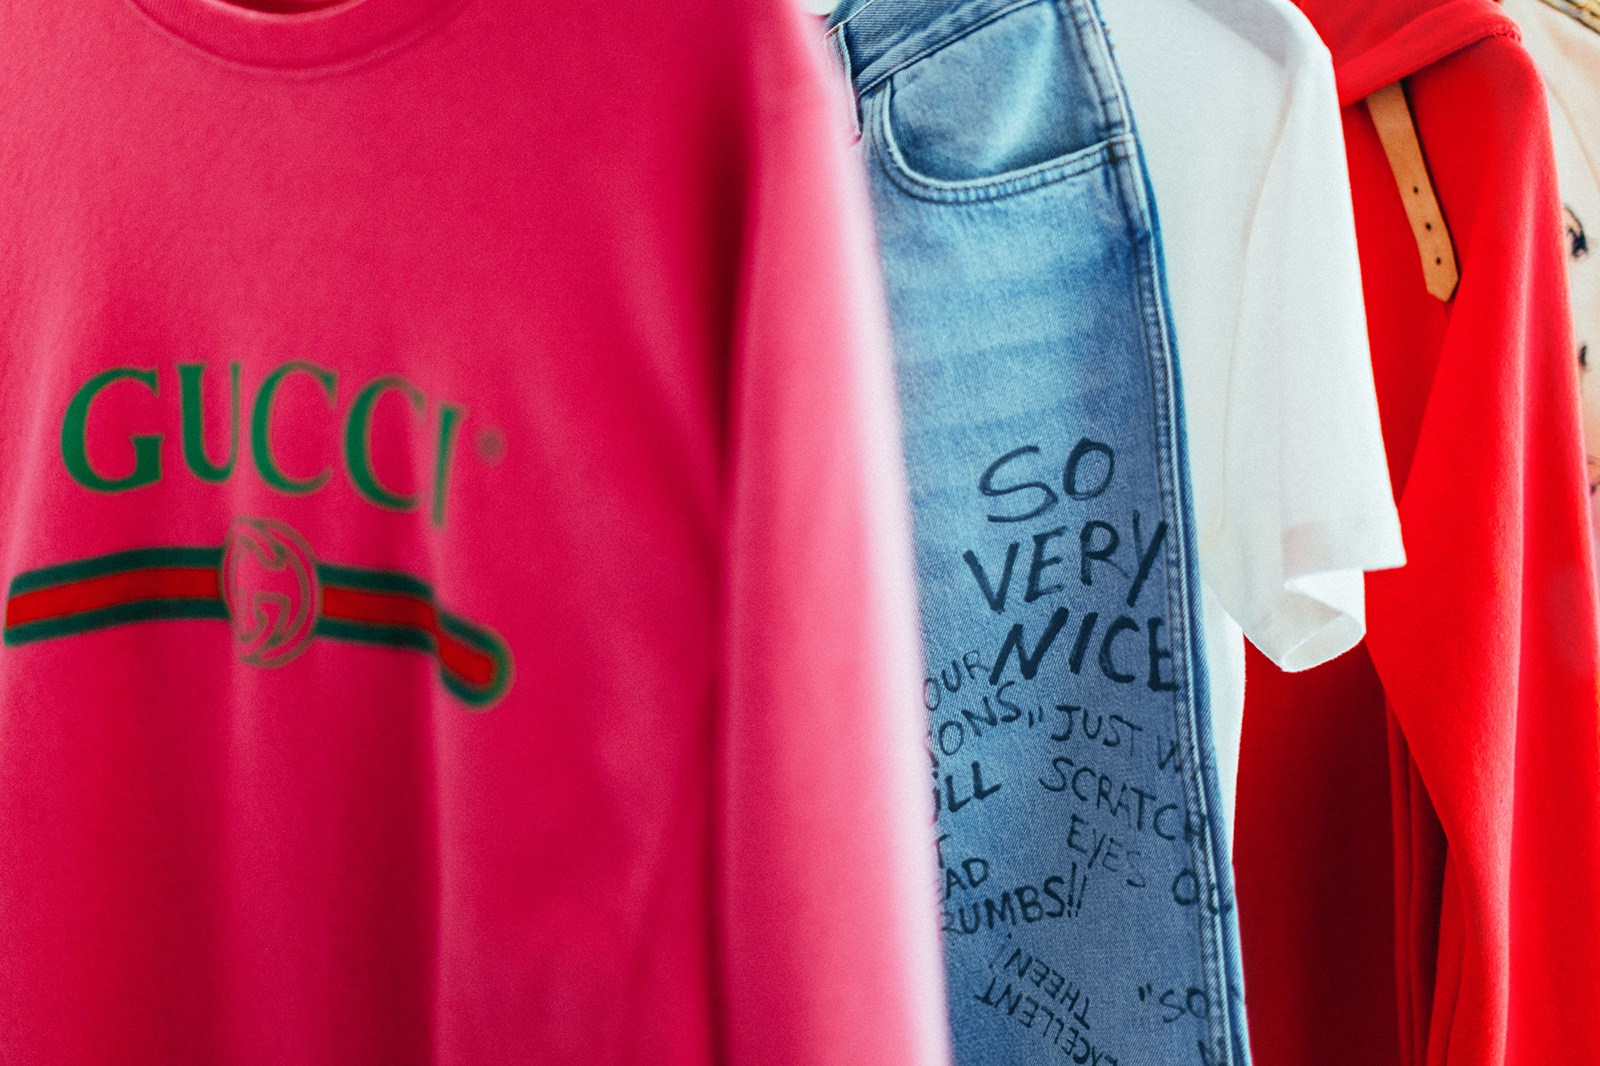 gucci-2017-spring-summer-collection-editorial-10.jpg